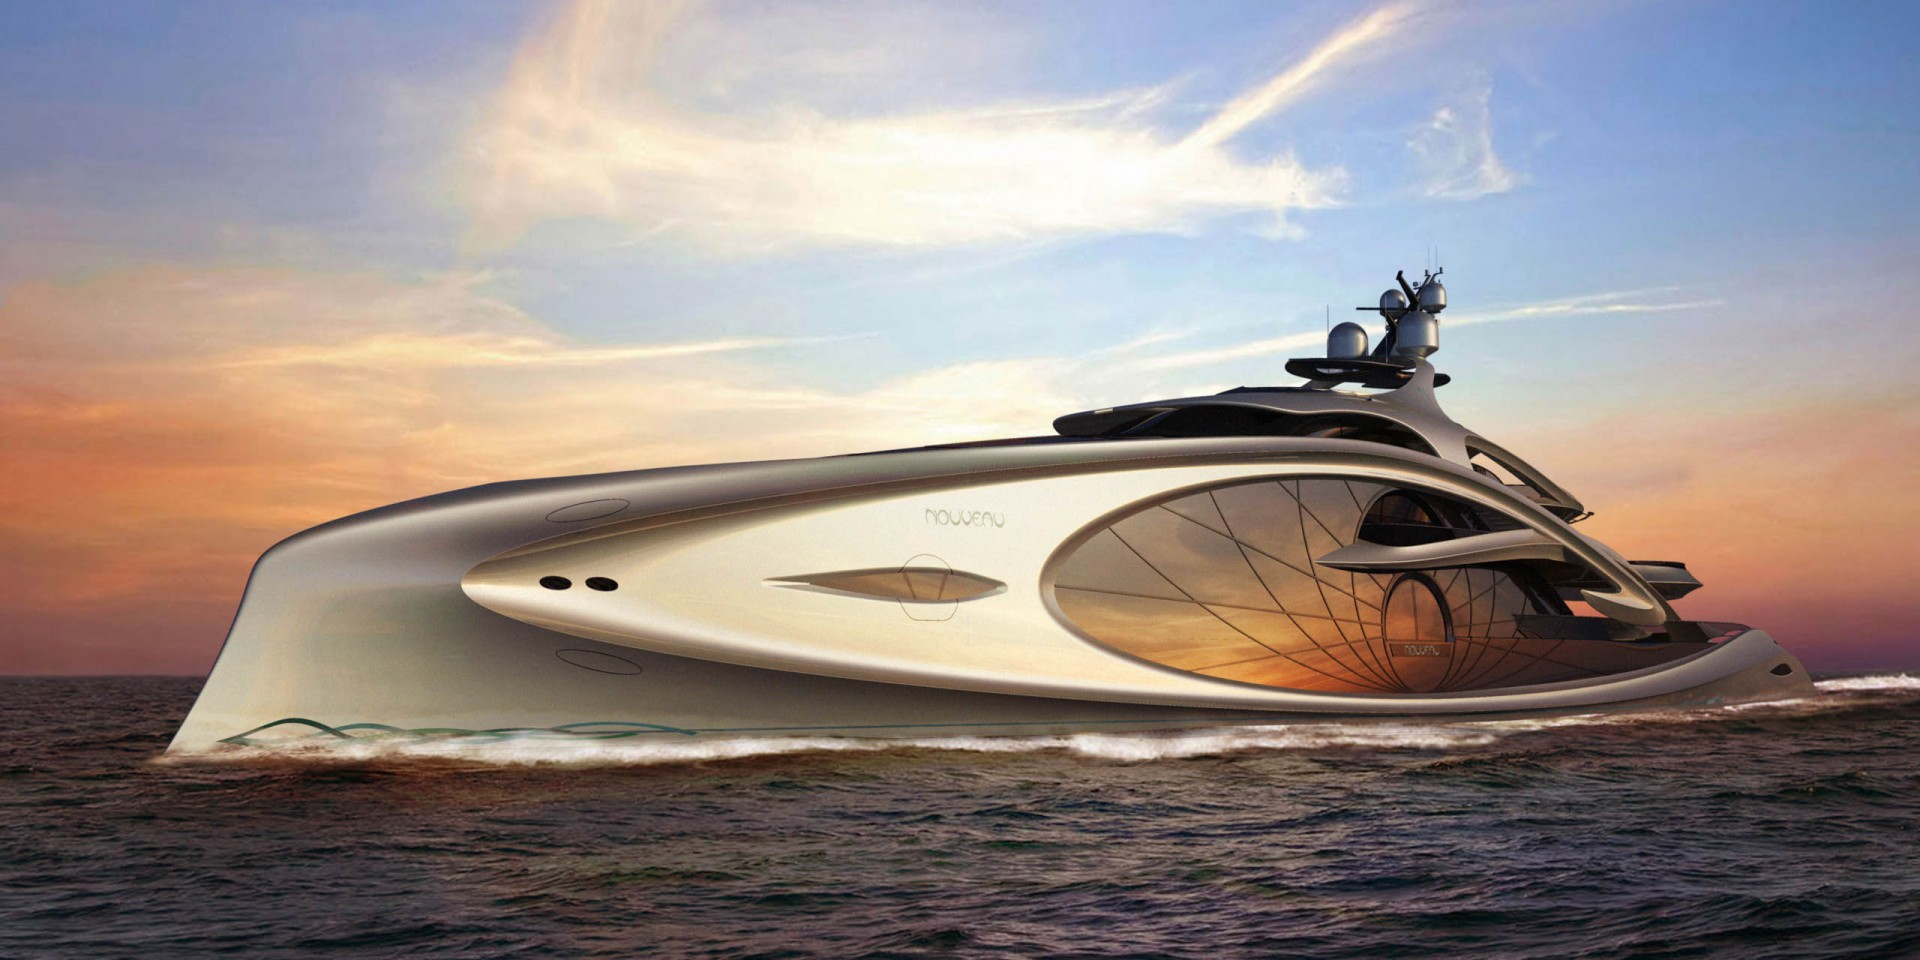 90m superyacht nouveau concept introduced by andy waugh superyachts news l - Les classiques du design ...